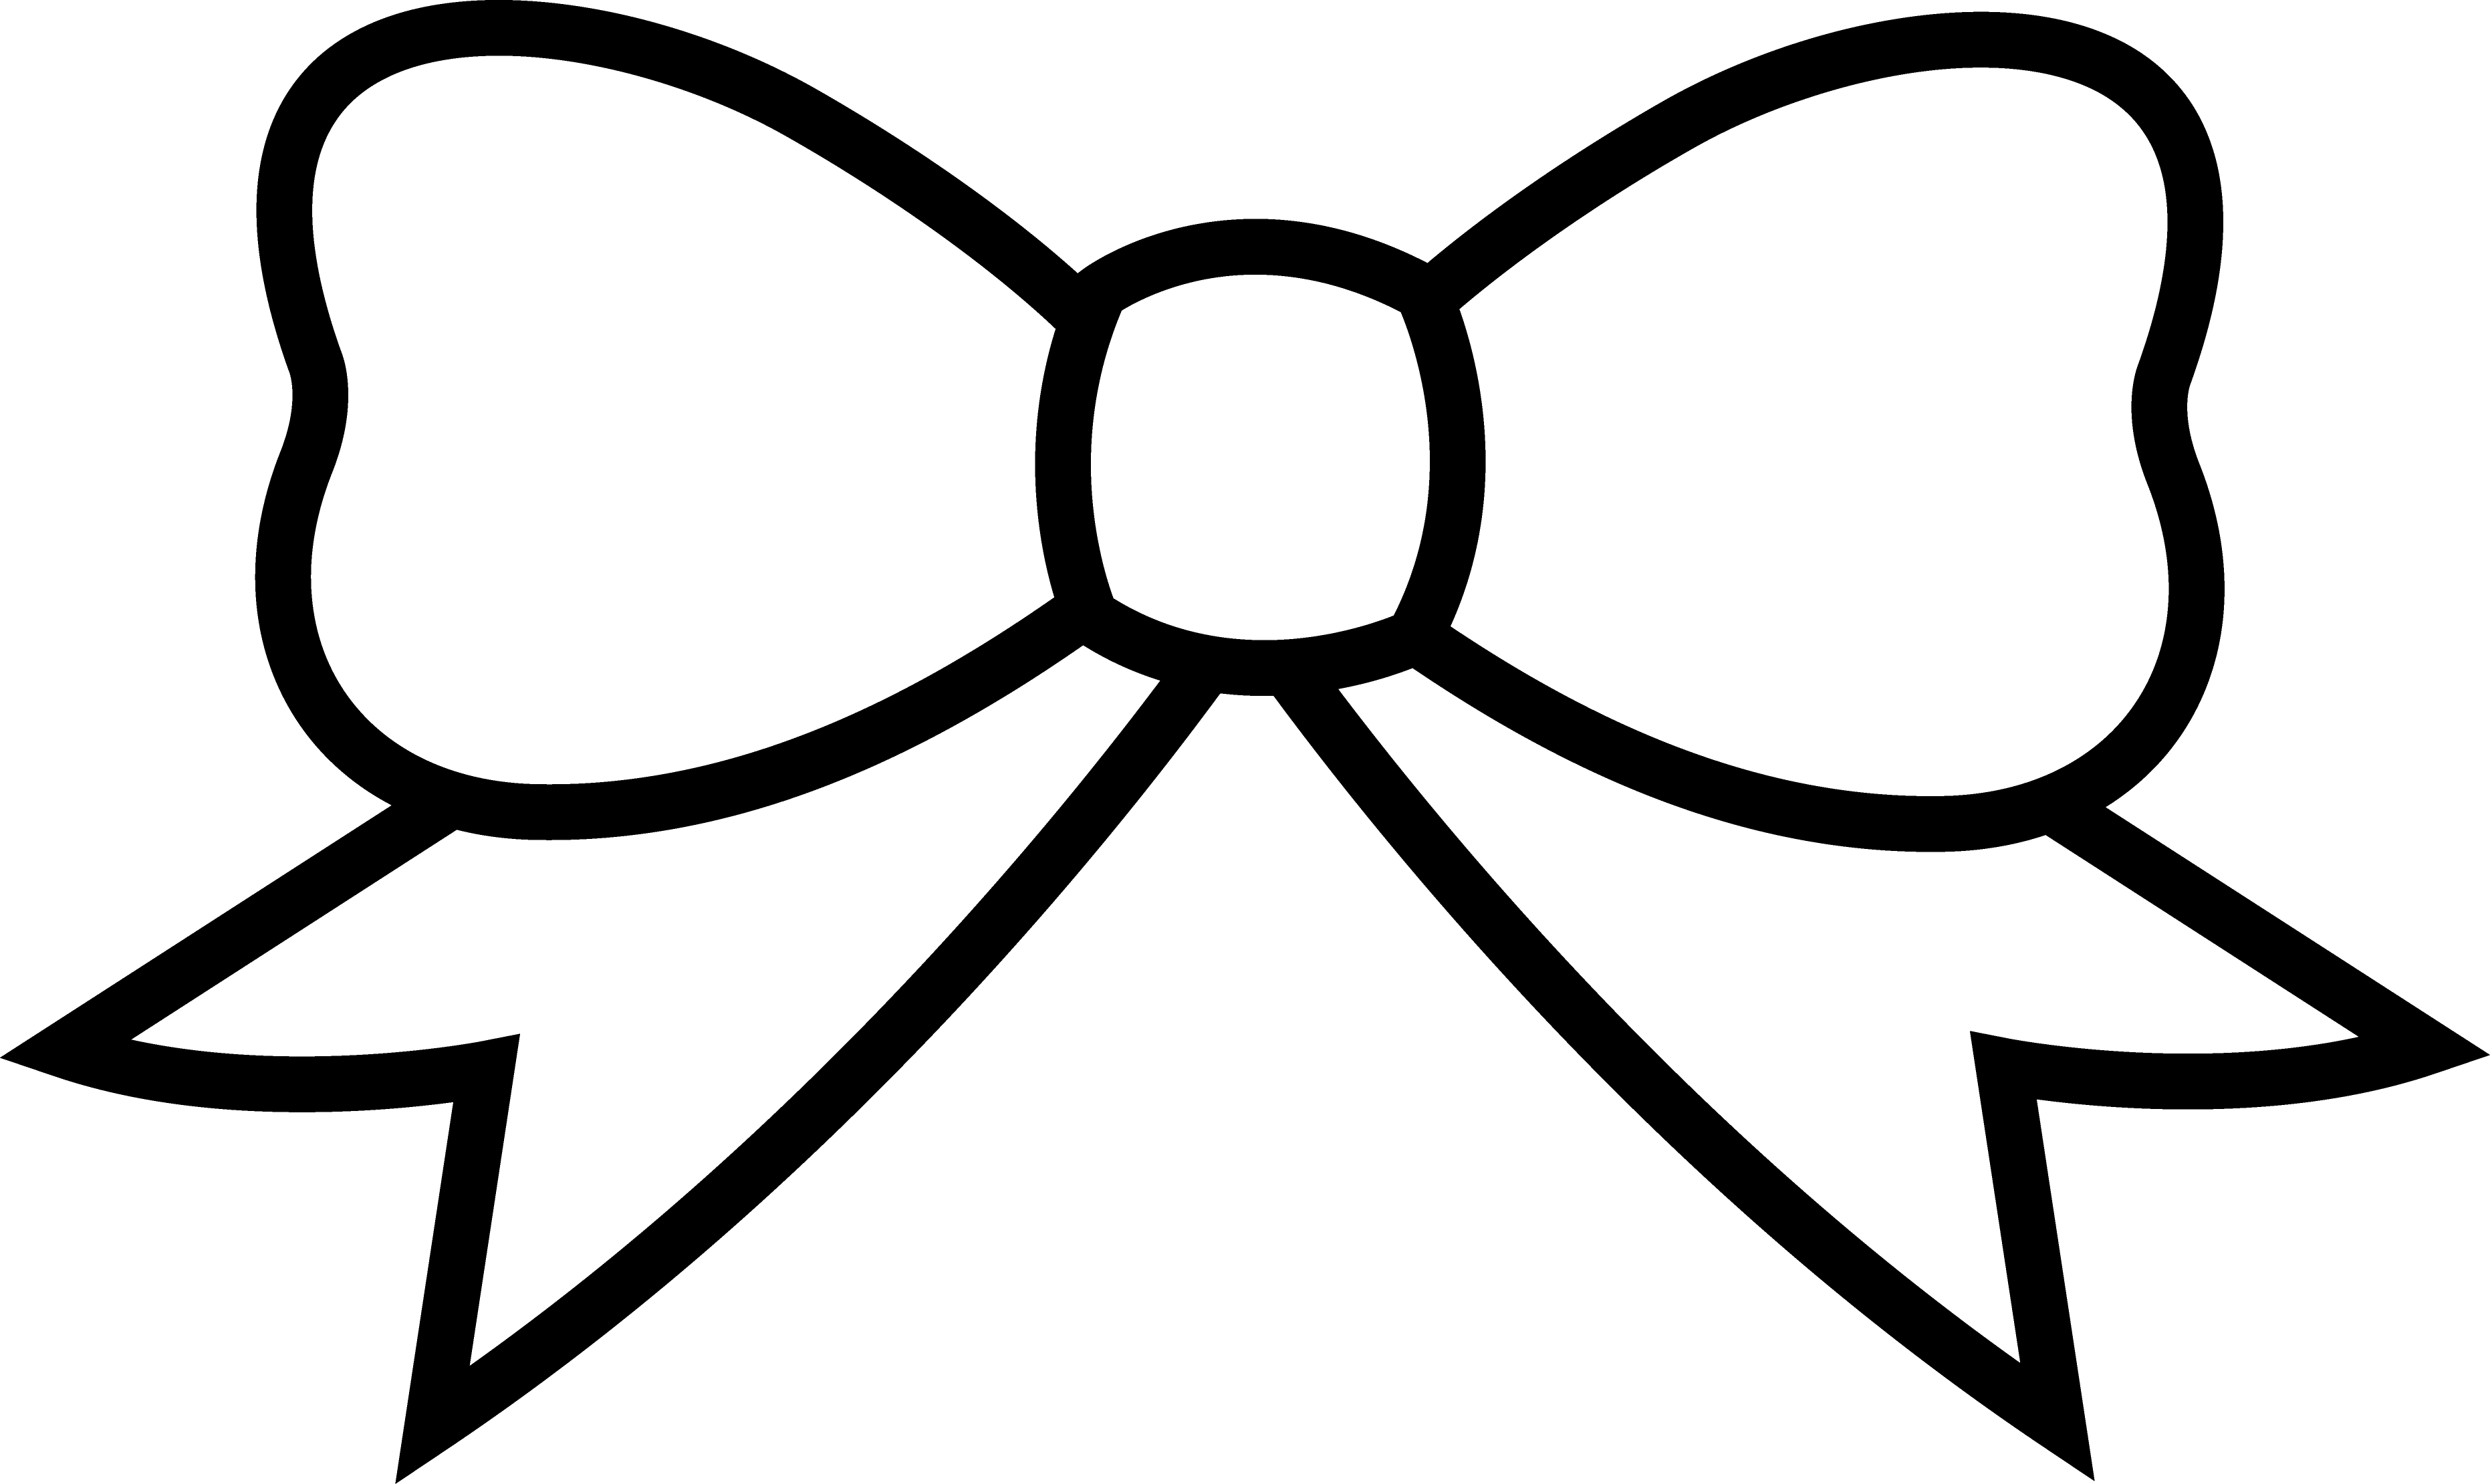 Bow panda free images. Bows clipart black and white